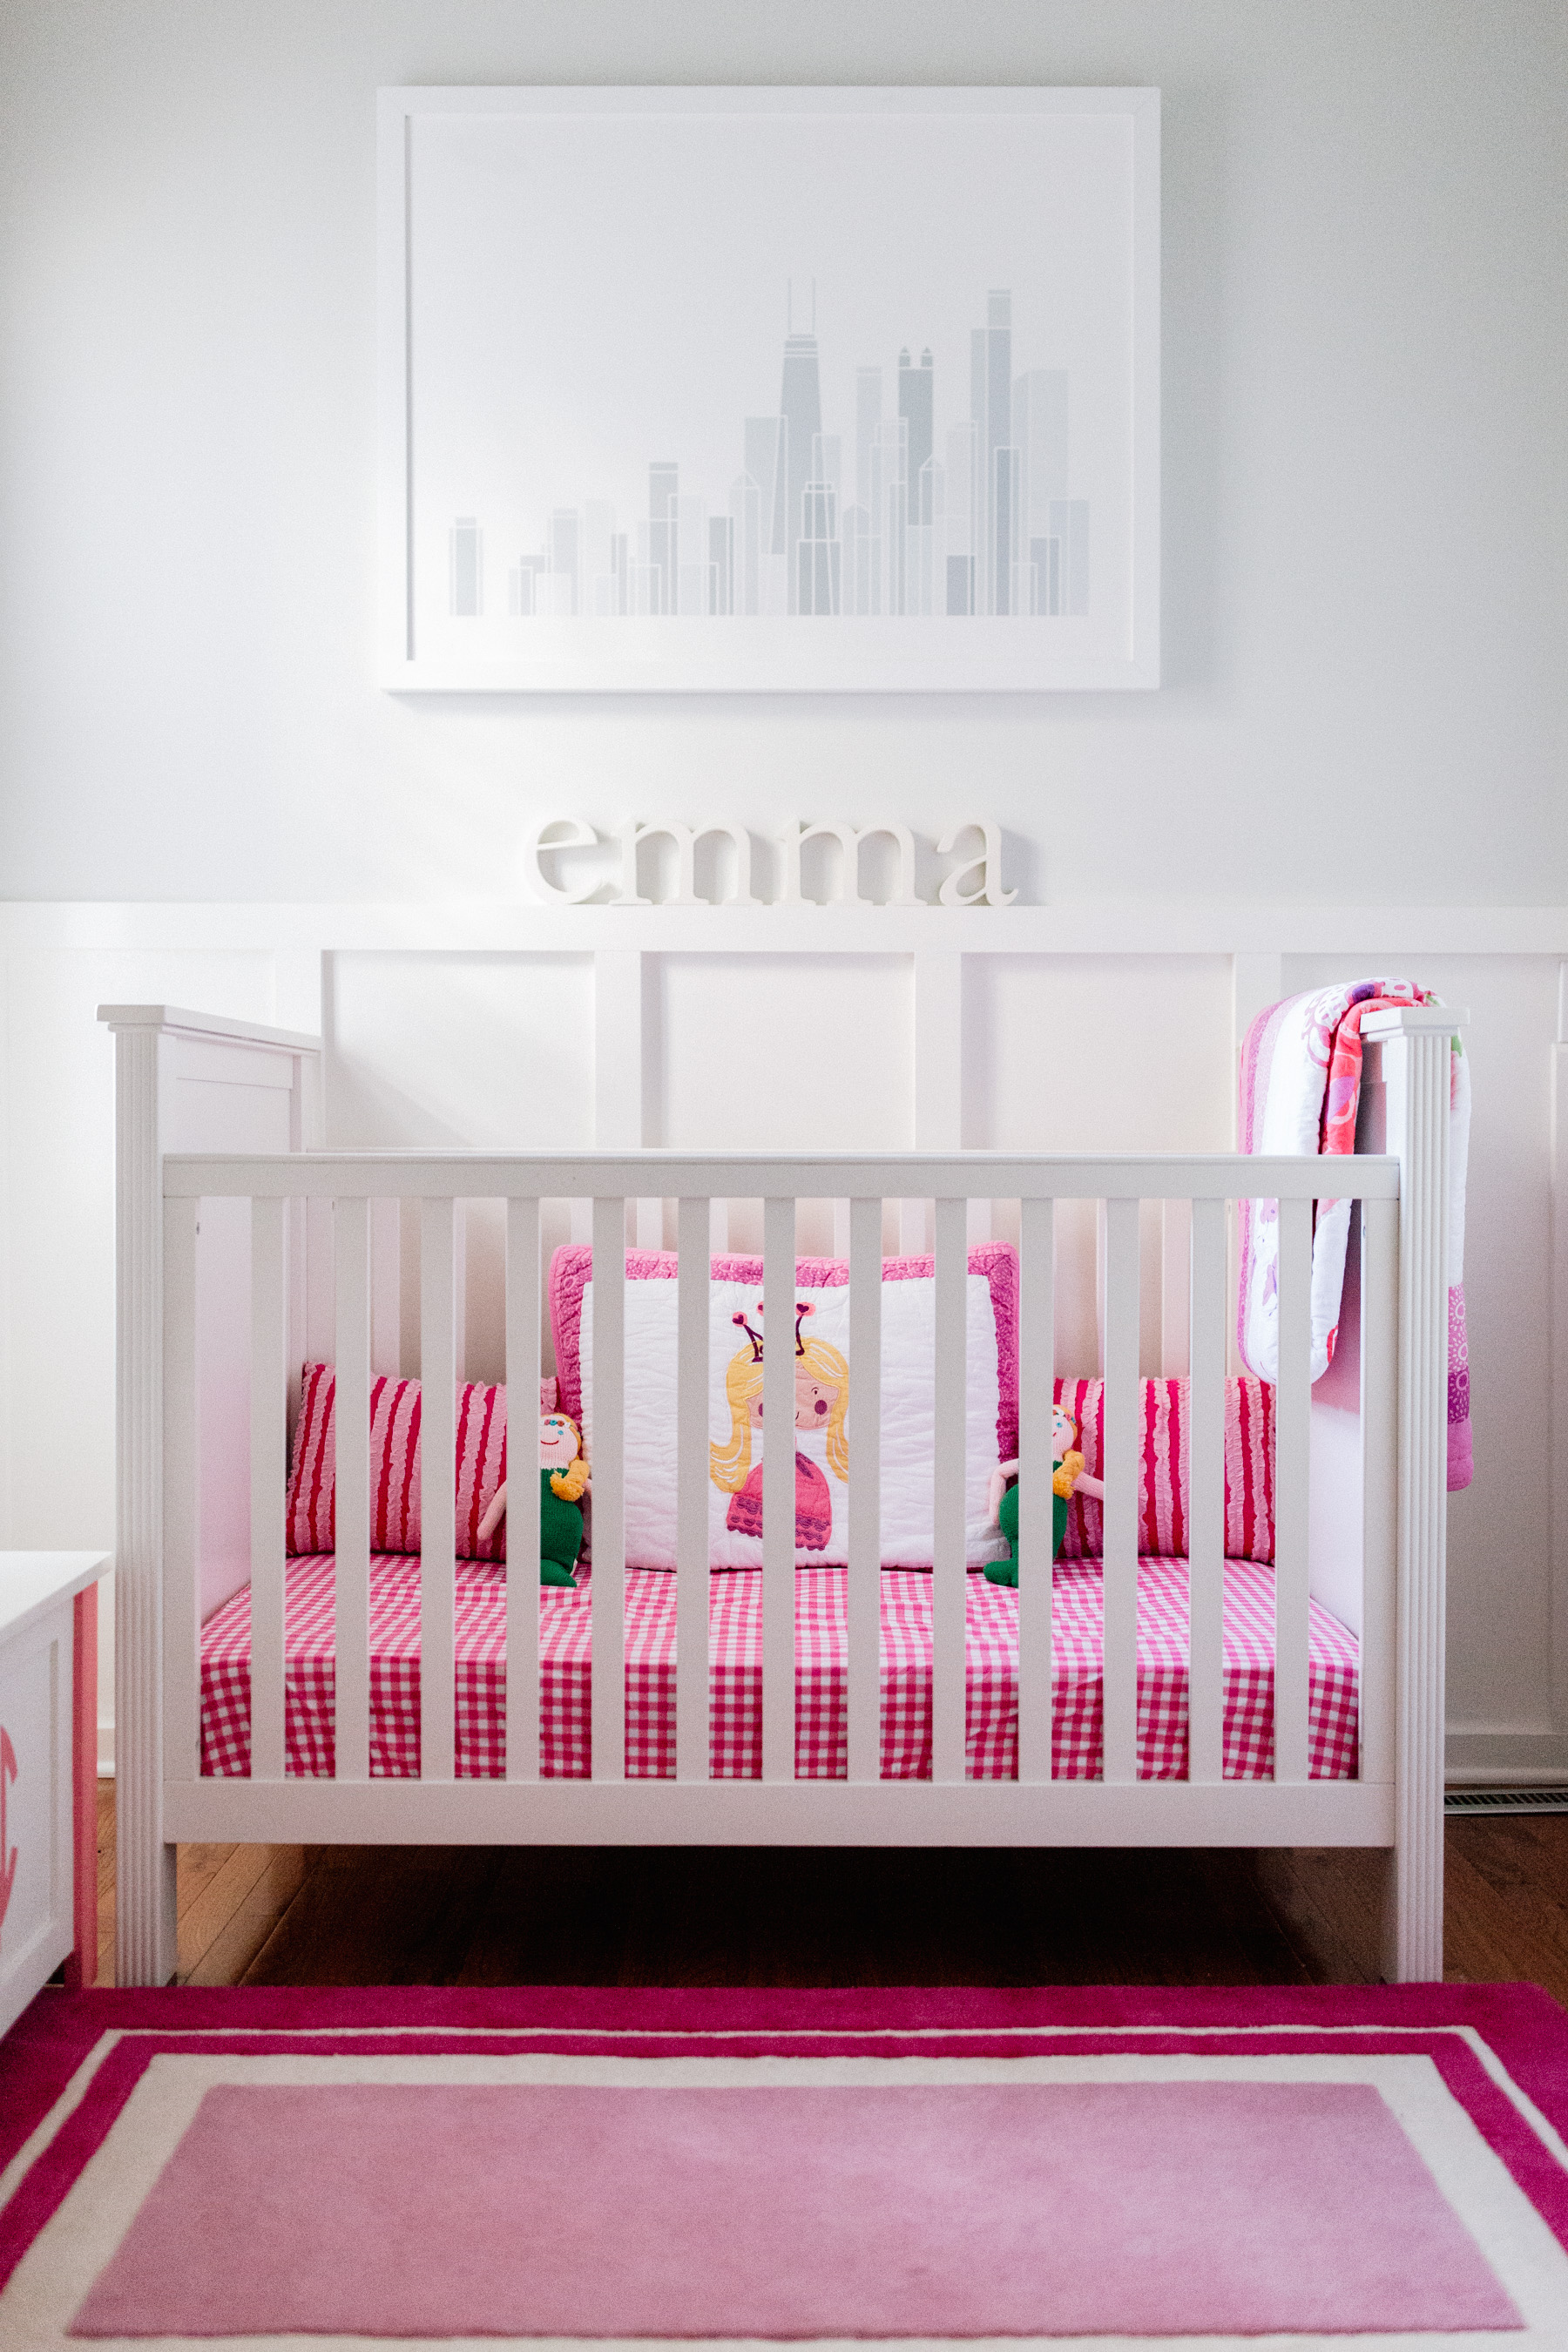 Minted - Emma's room